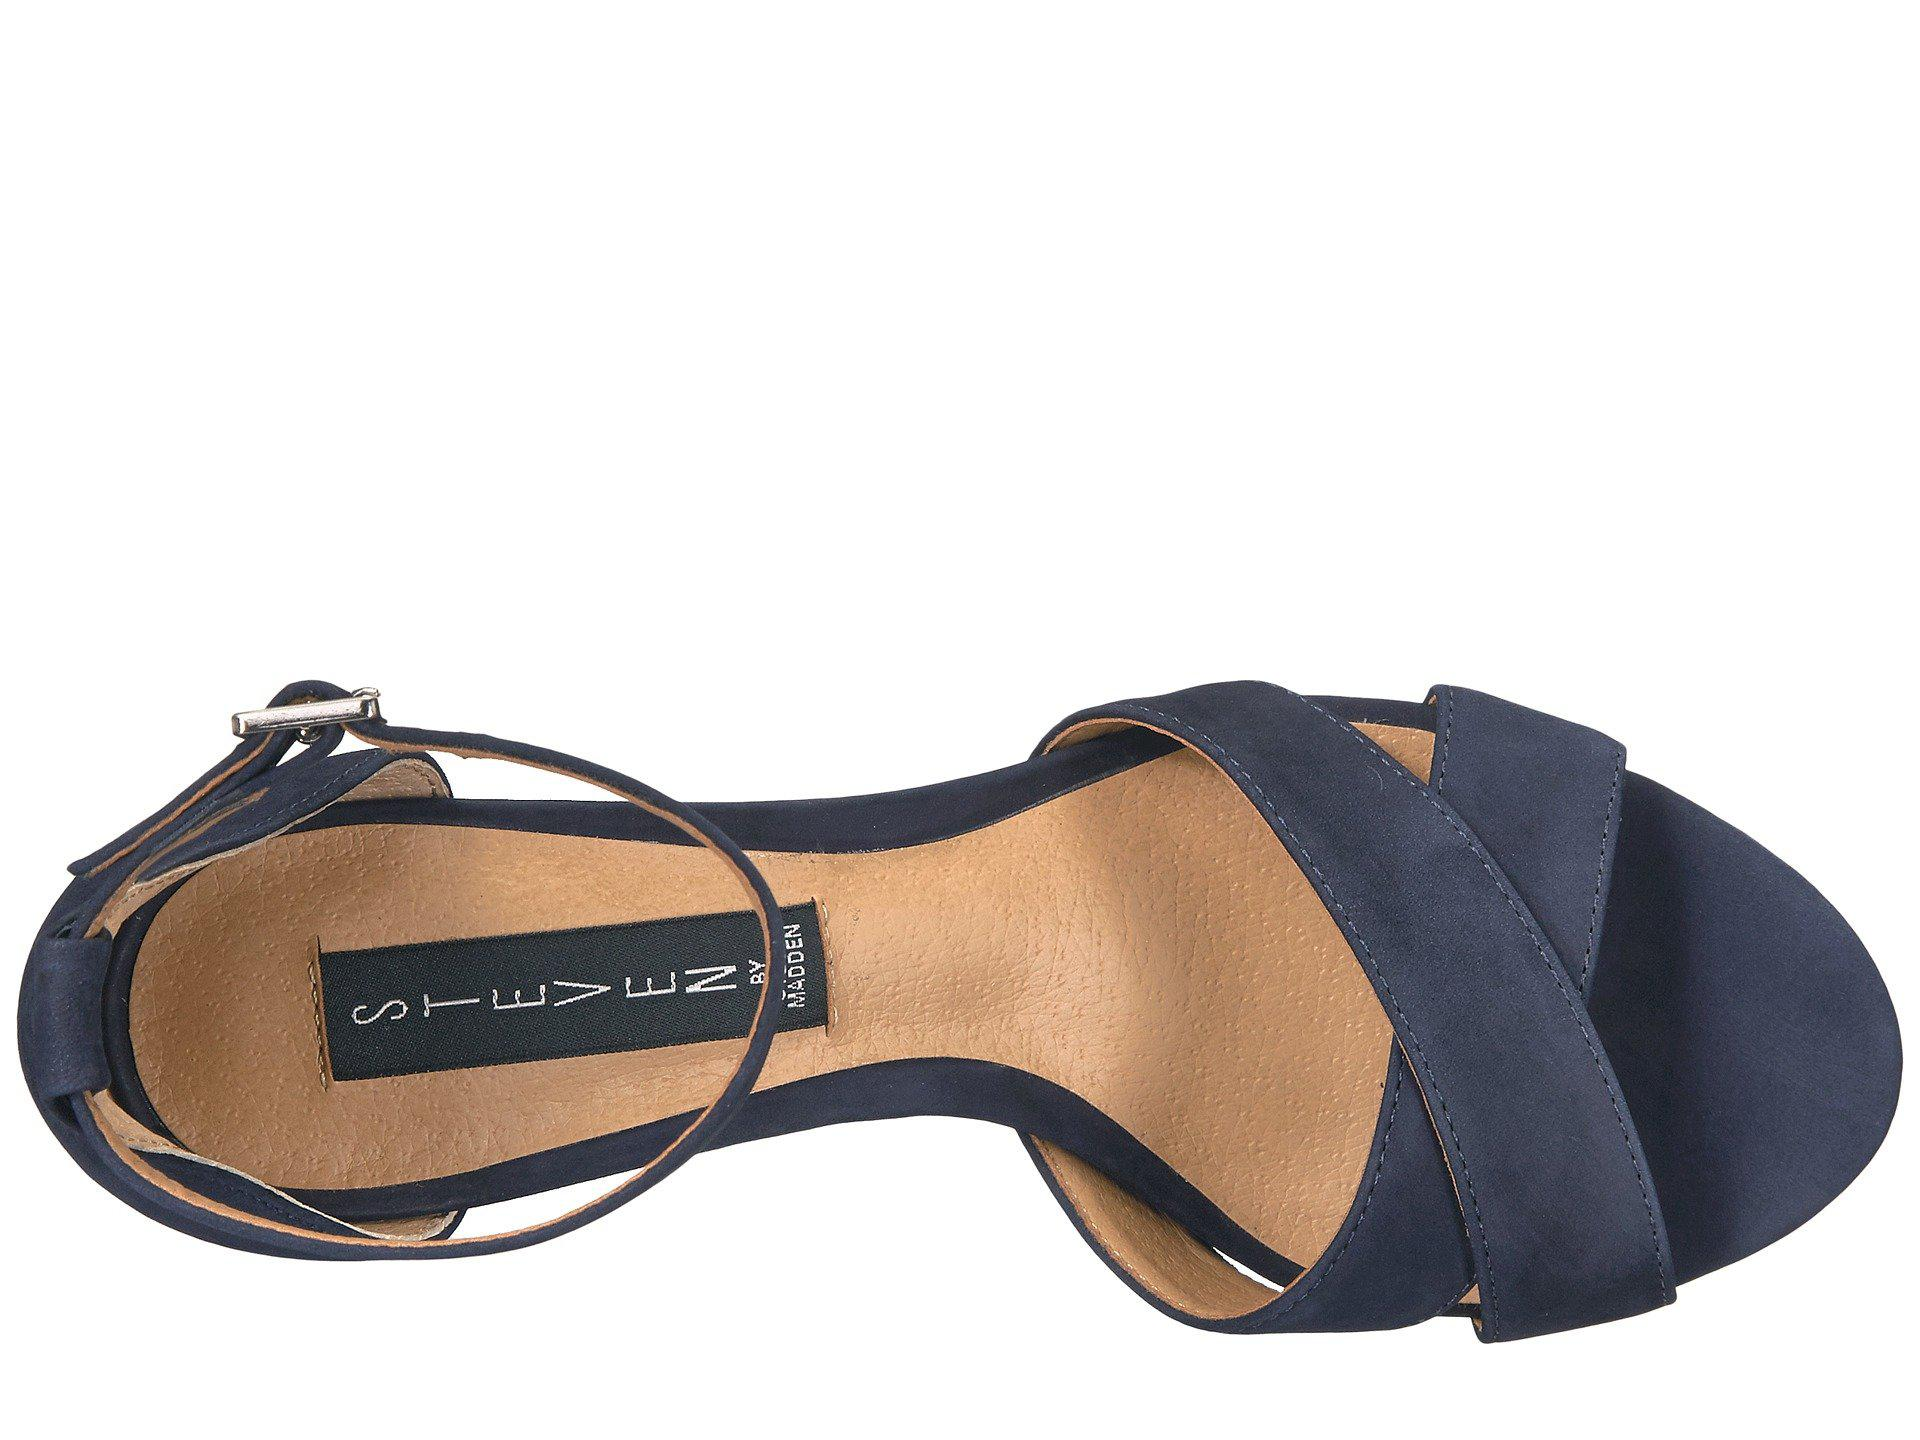 98a8d8c9f11 Lyst - Steven by Steve Madden Voomme-s in Blue - Save 32%